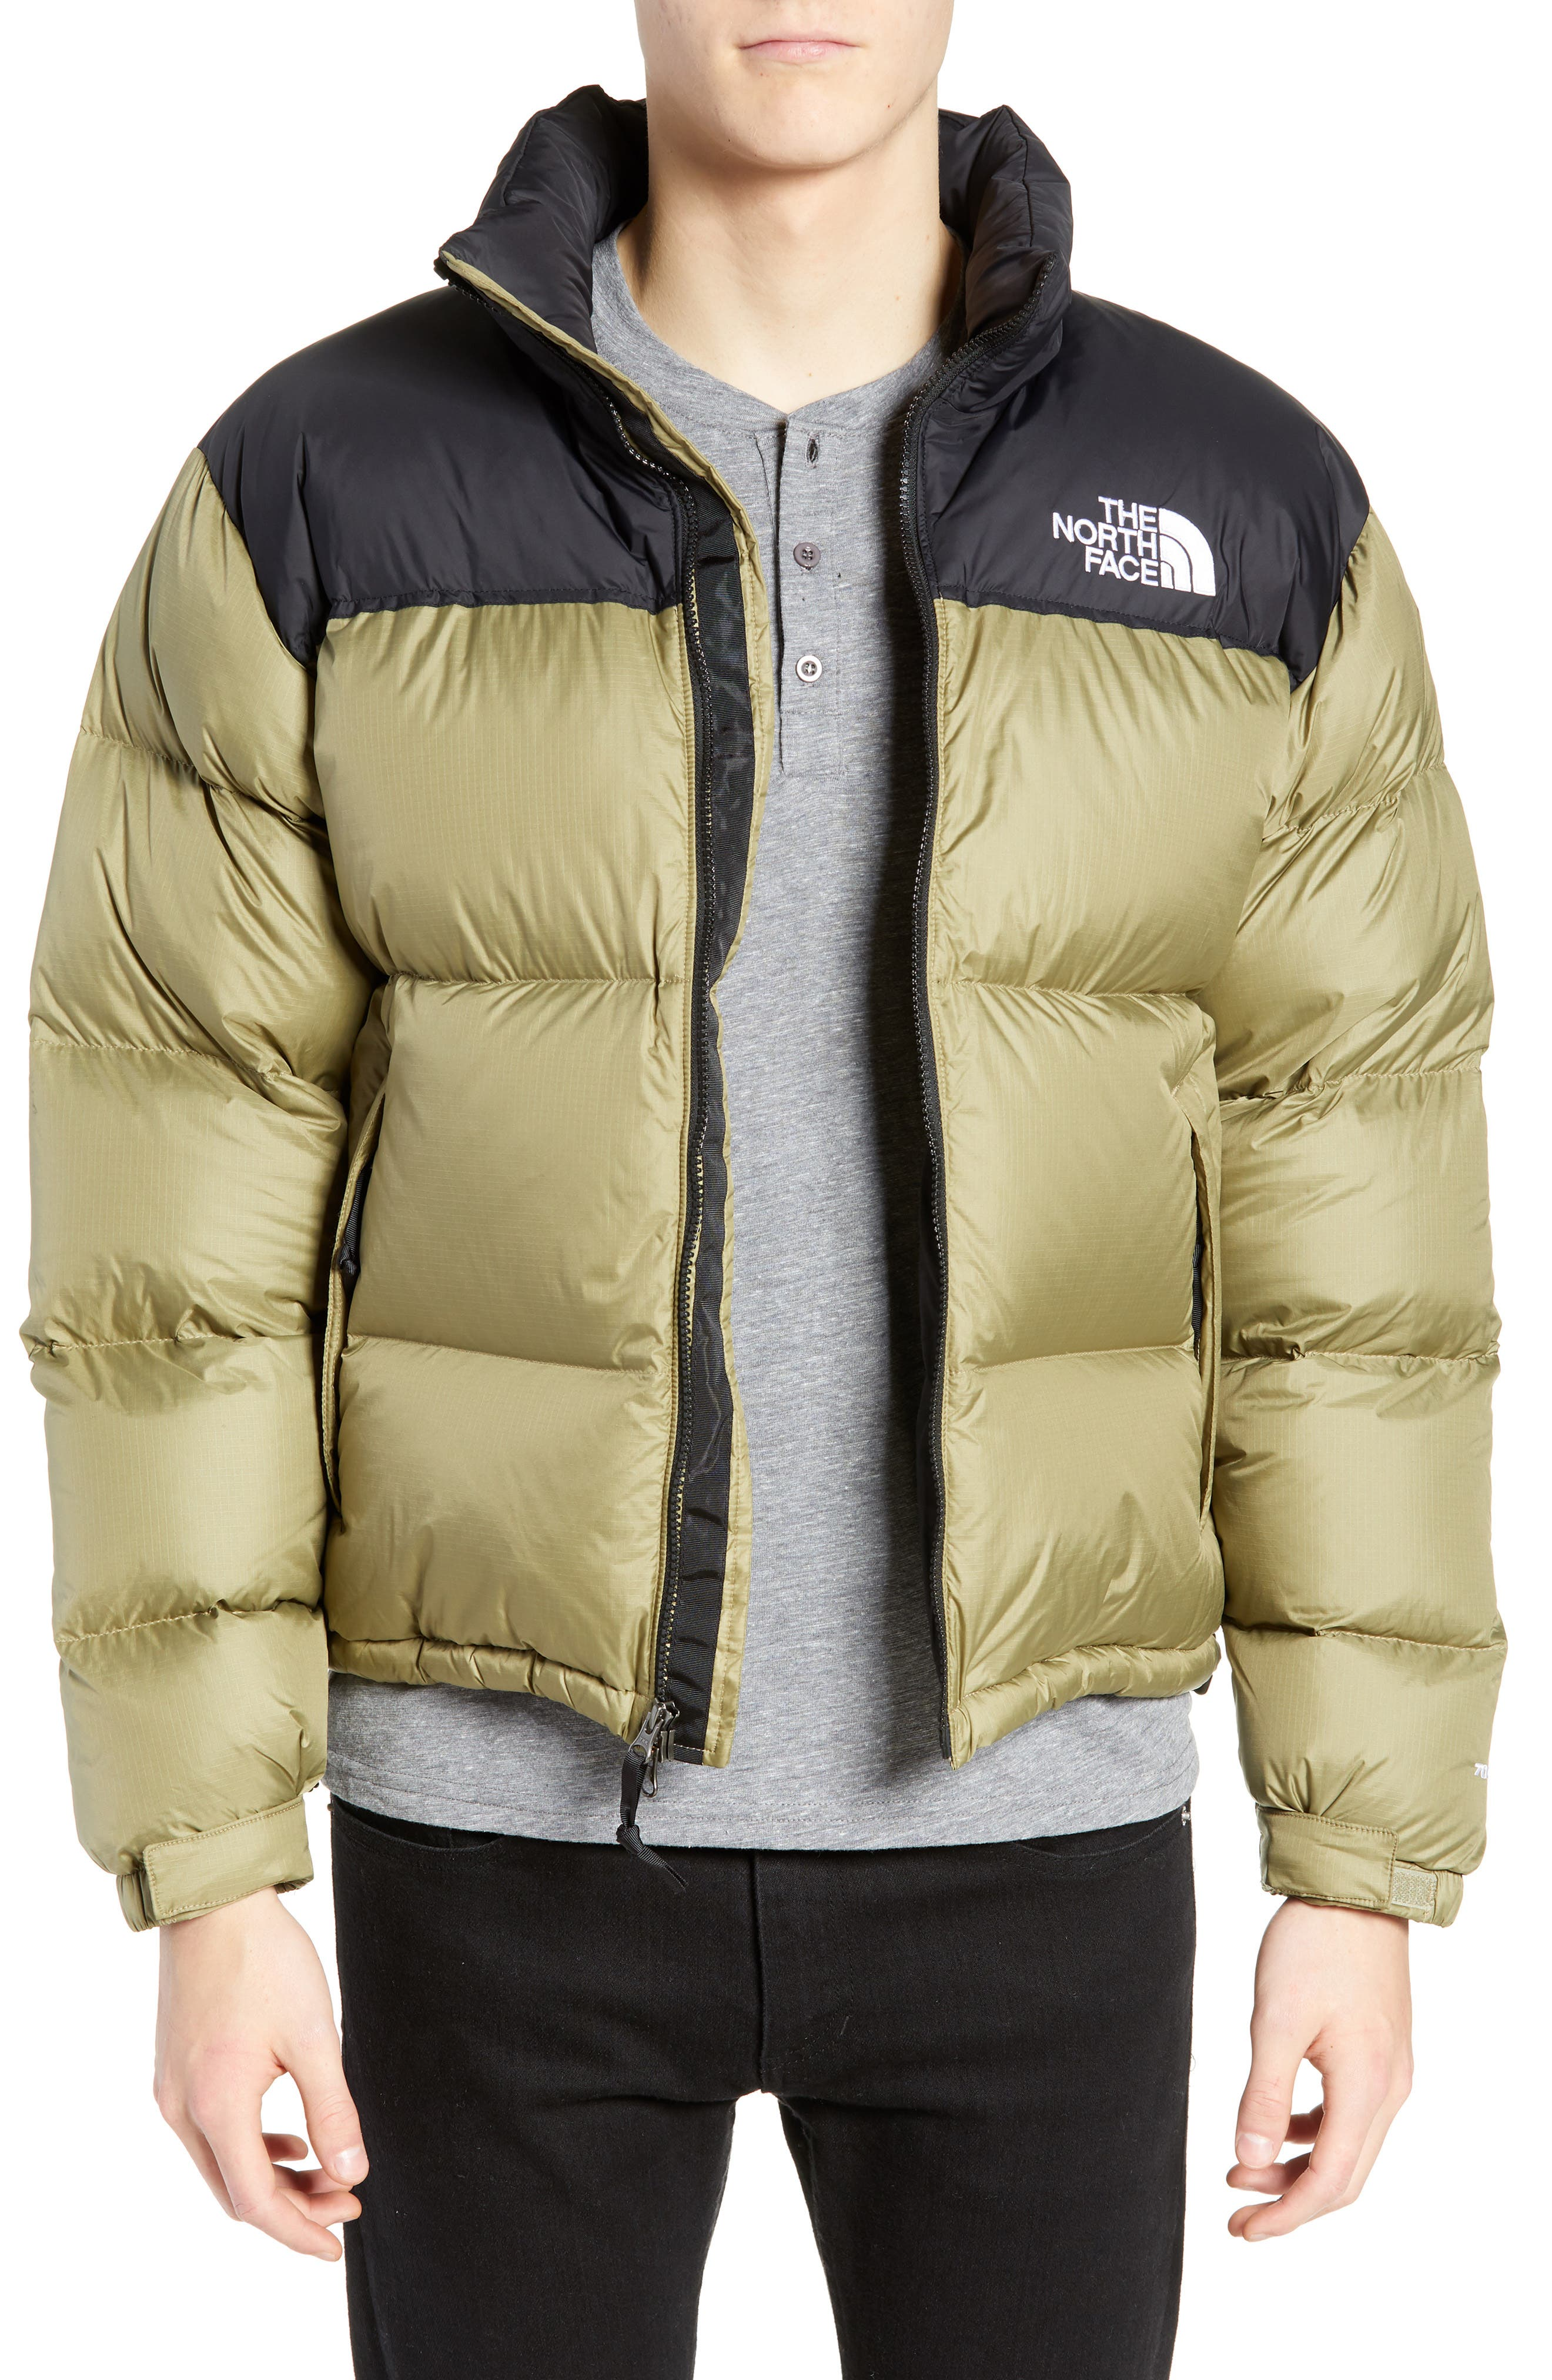 Accessories Nordstrom Outerwear Clothing amp; The North Face Xwqgg8